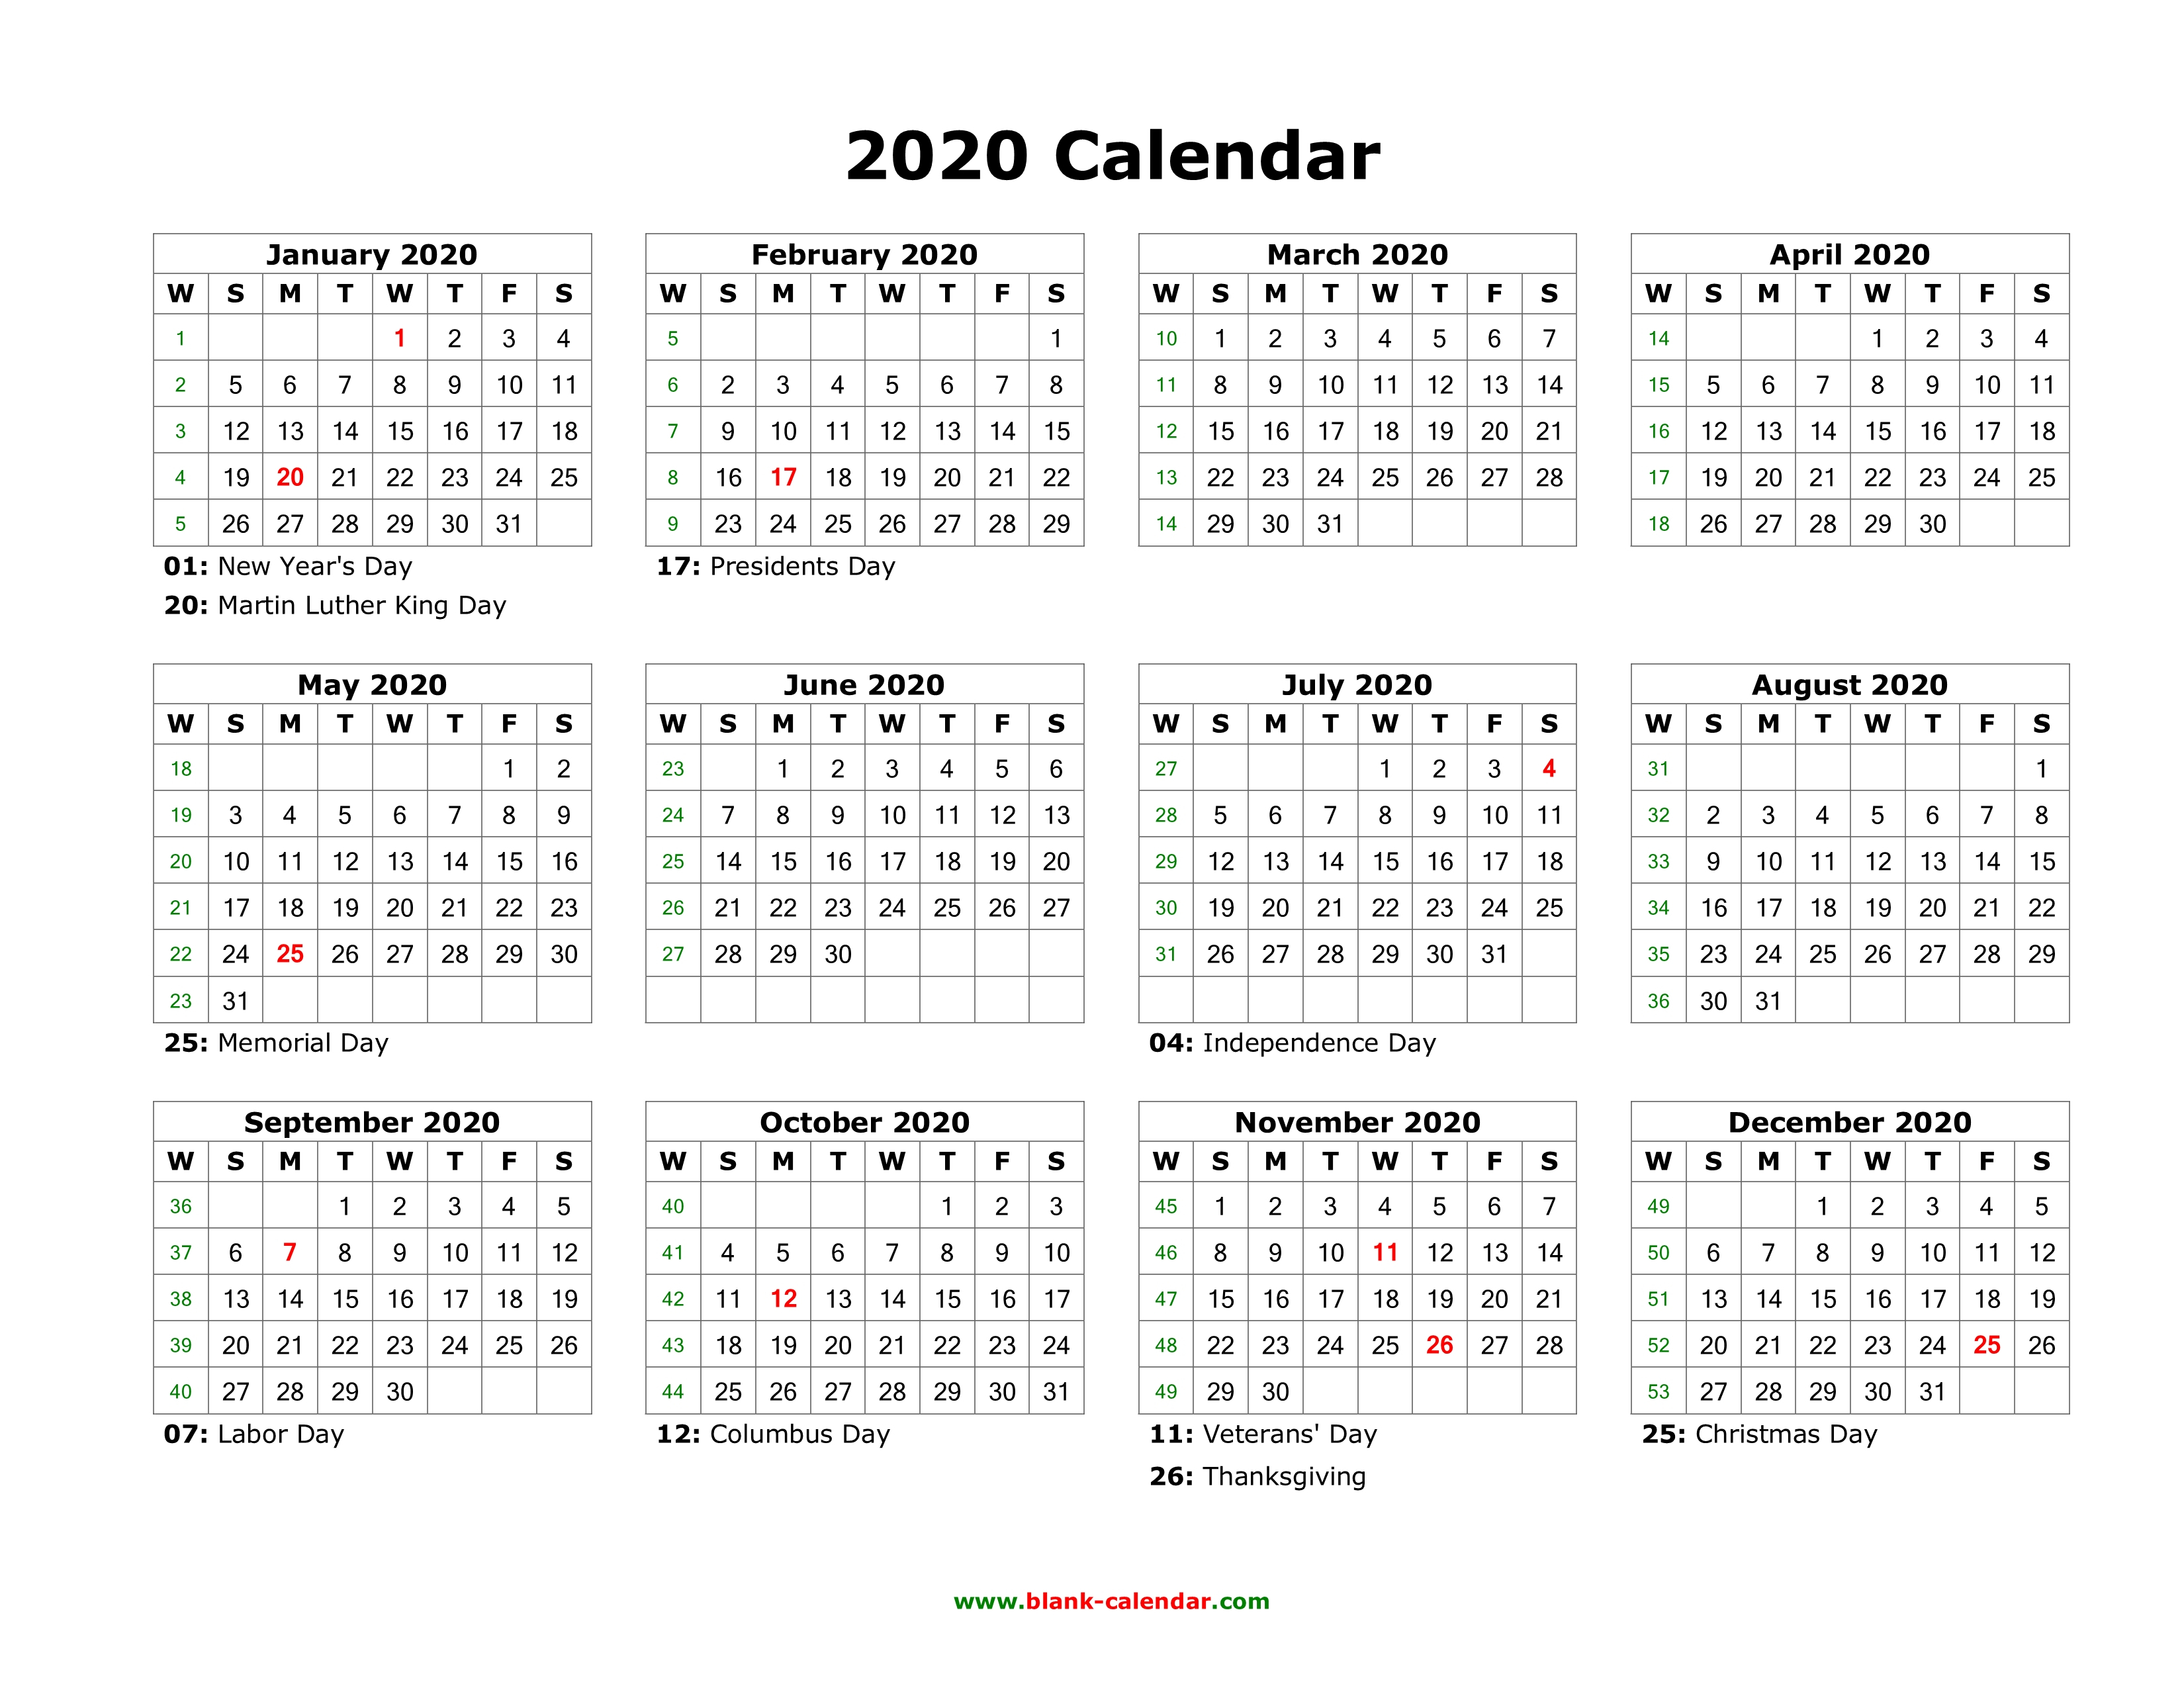 Blank Calendar 2020 | Free Download Calendar Templates pertaining to Free 2020Printable Calendars Without Downloading